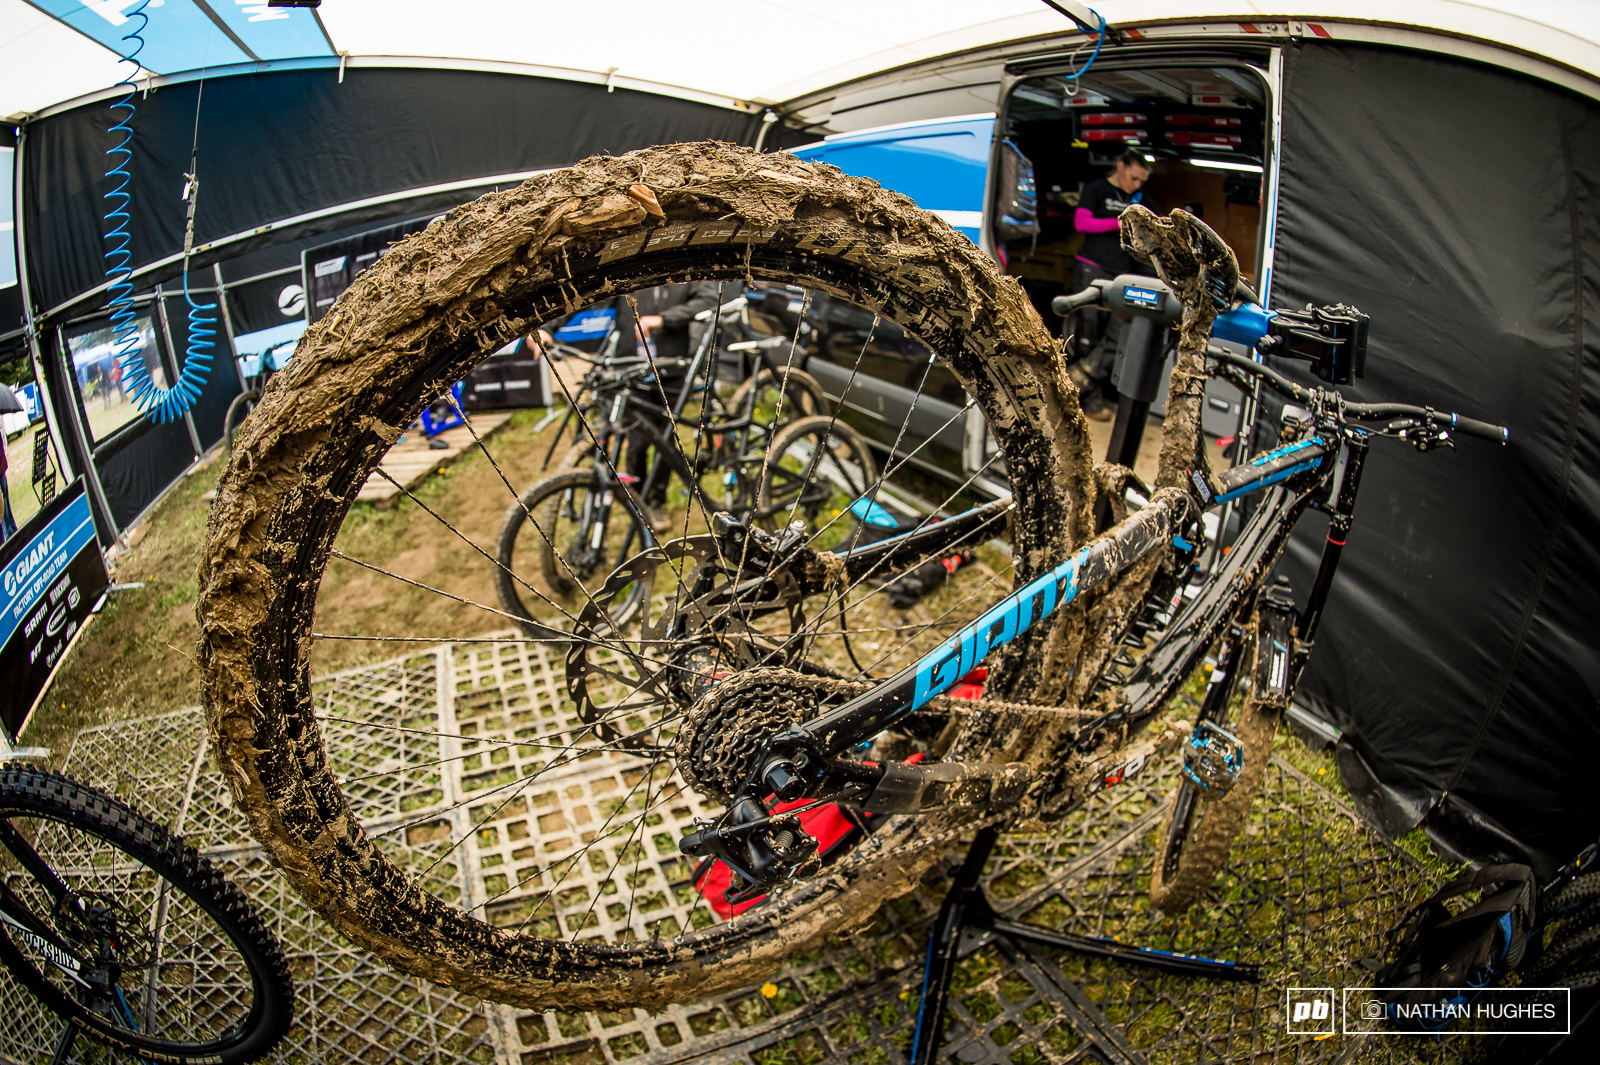 Ever wondered how much weight all that mud adds to a DH bike A weigh-in at the Giant pit revealed the bikes are coming in at 36.1 at the top of the hill and diving to a much less fanciful 43.5lbs by the finish line.